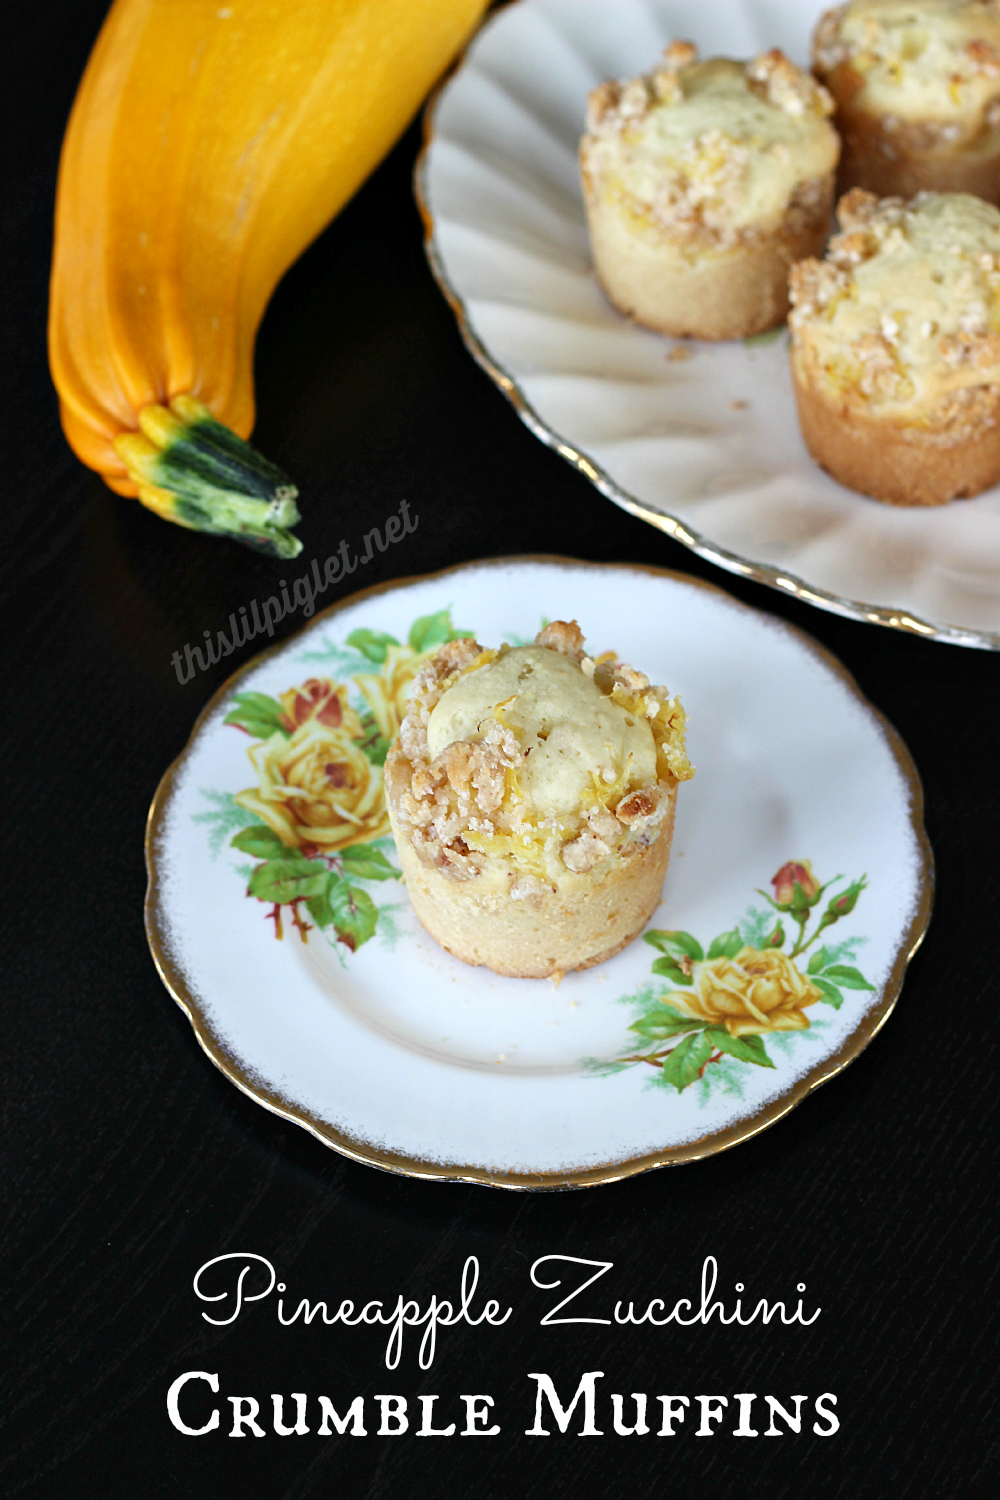 PineappleCrumbleMuffinslbl